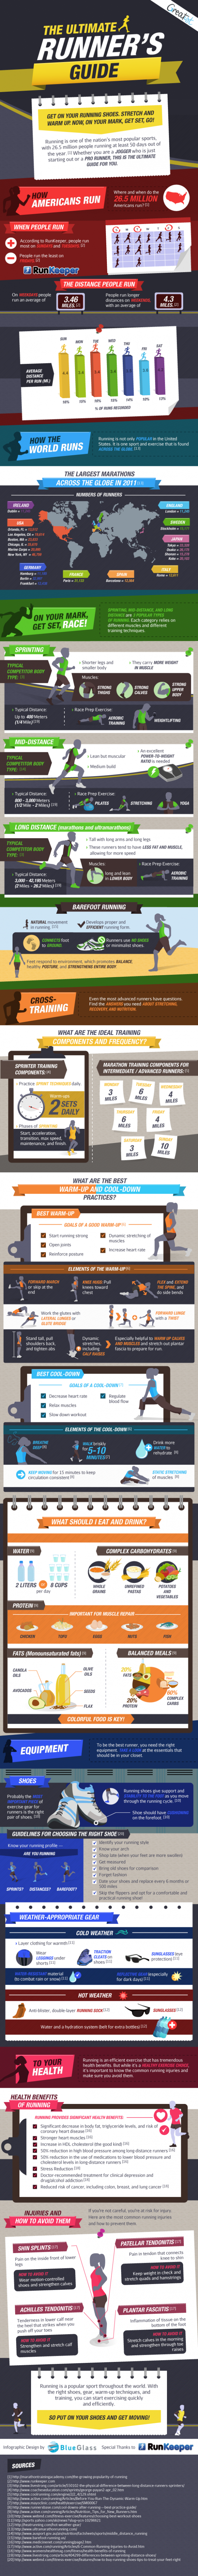 The Ultimate Guide to Running